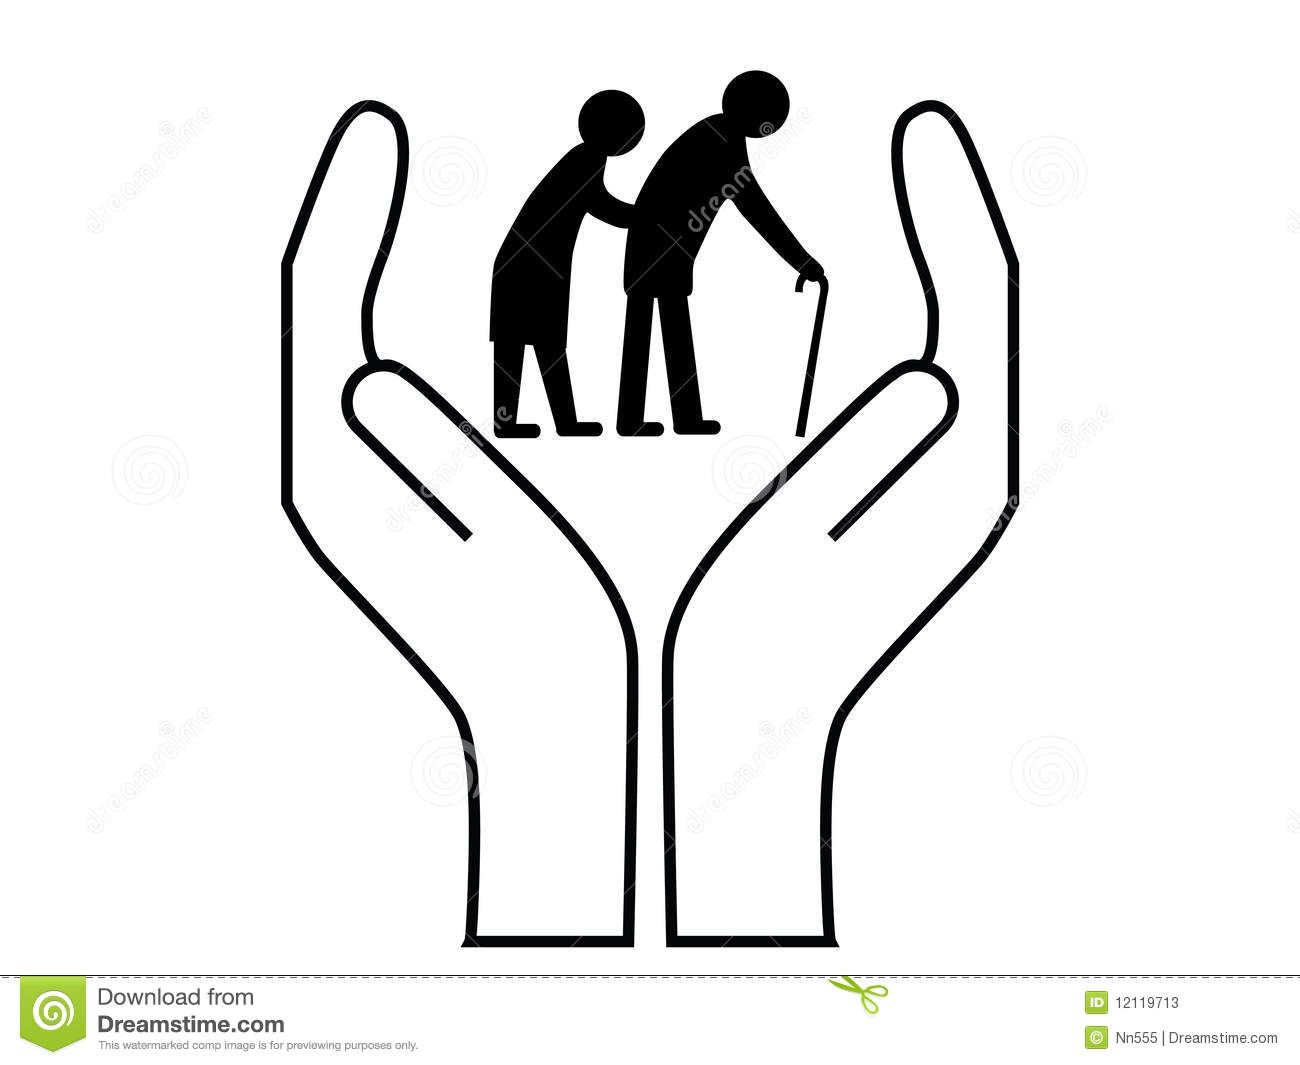 Elderly clip art pictures. Caring clipart home